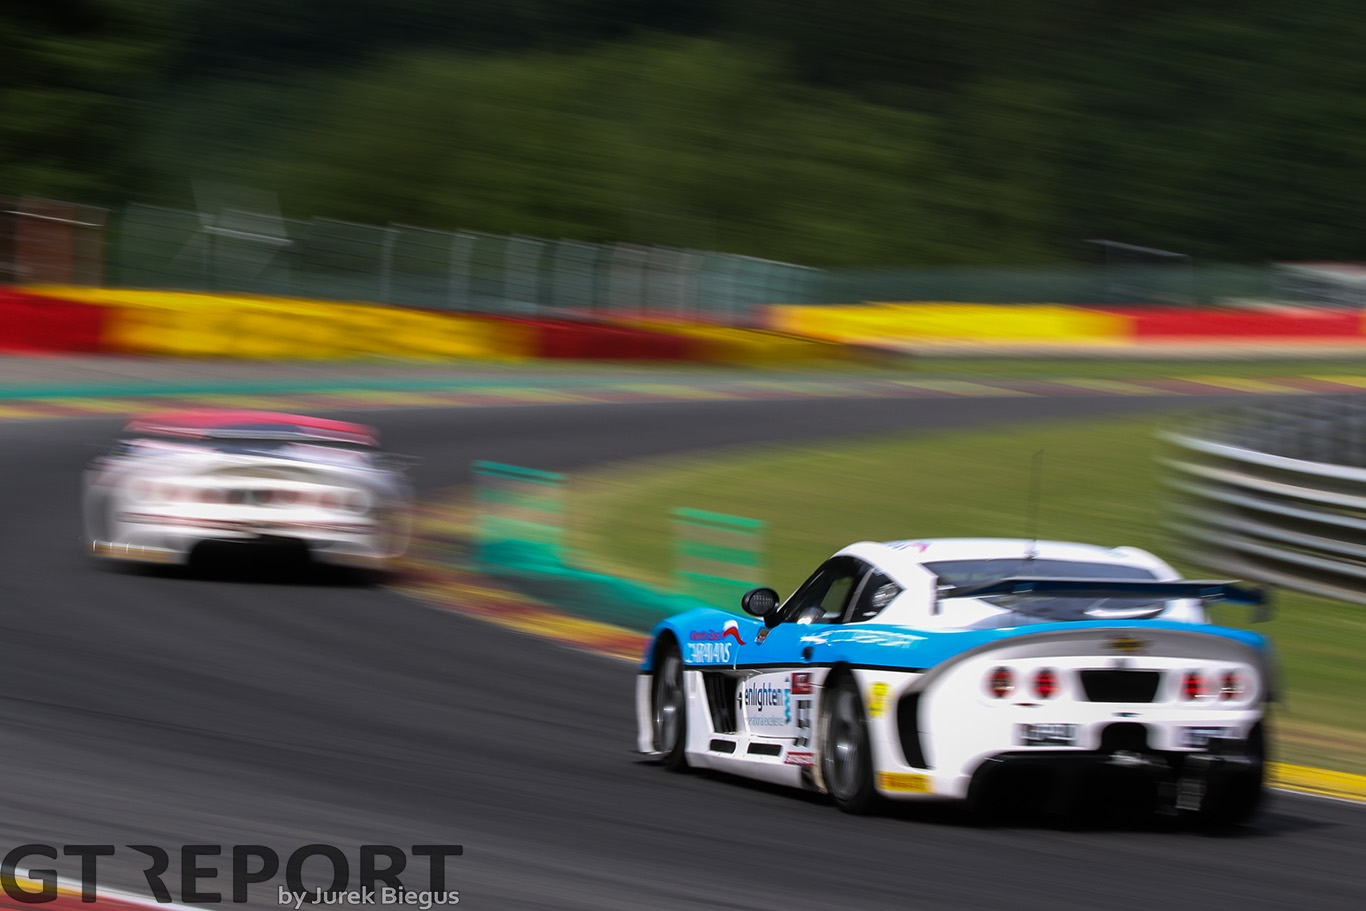 HHC Motorsport Ginetta G55 GT4 with drivers Stuart Middleton & William Tregurtha during the British GT Championship at Circuit de Spa-Francorchamps, Stavelot, Belgium on 8 July 2017. Photo by Jurek Biegus.